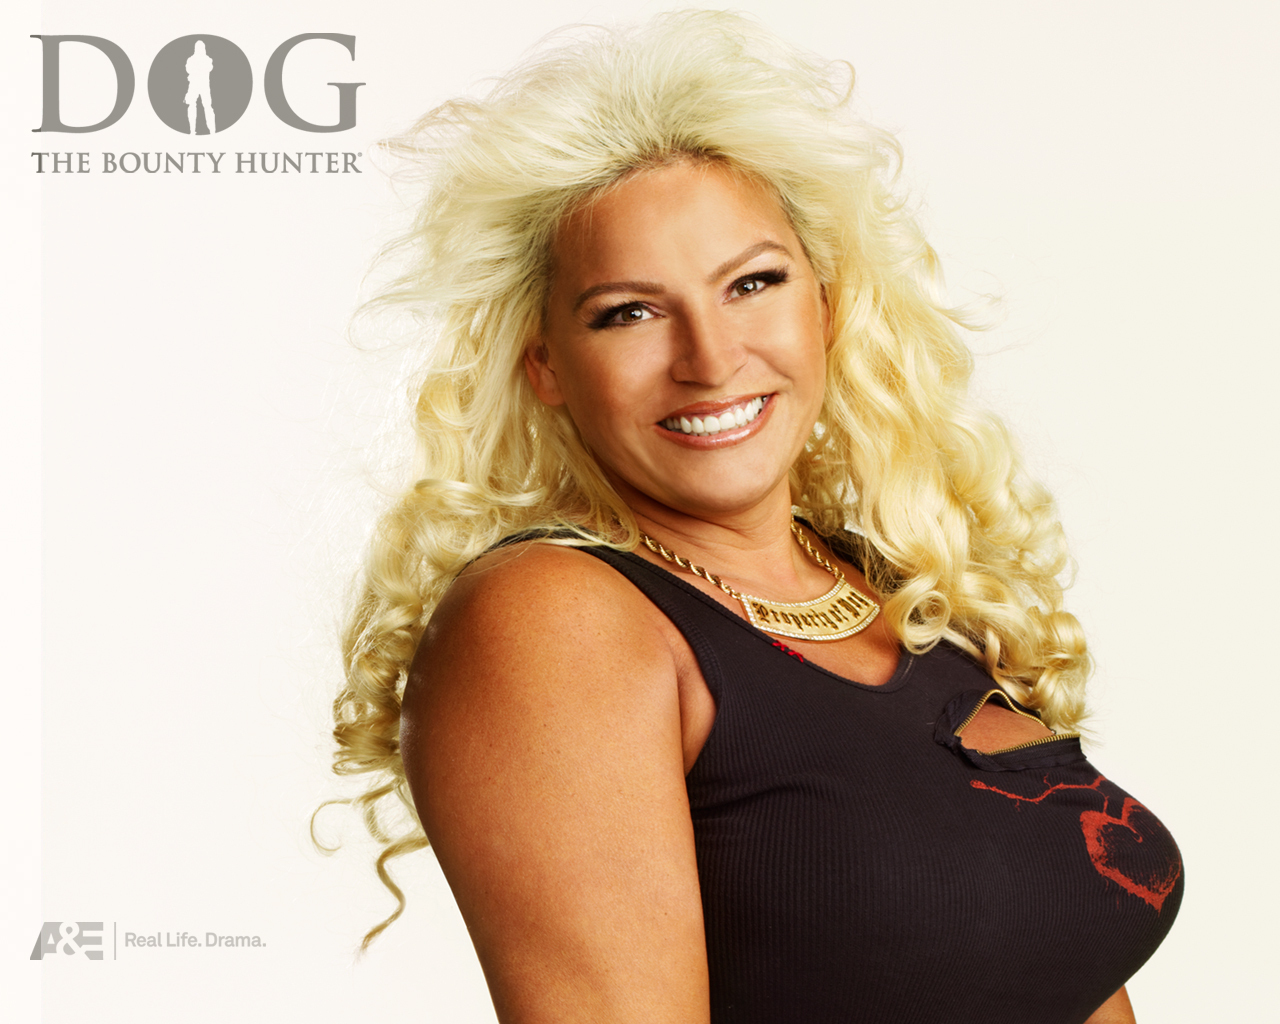 Beth-dog-the-bounty-hunter-1852353-1280-1024.jpg#Dog%20the%20Bounty